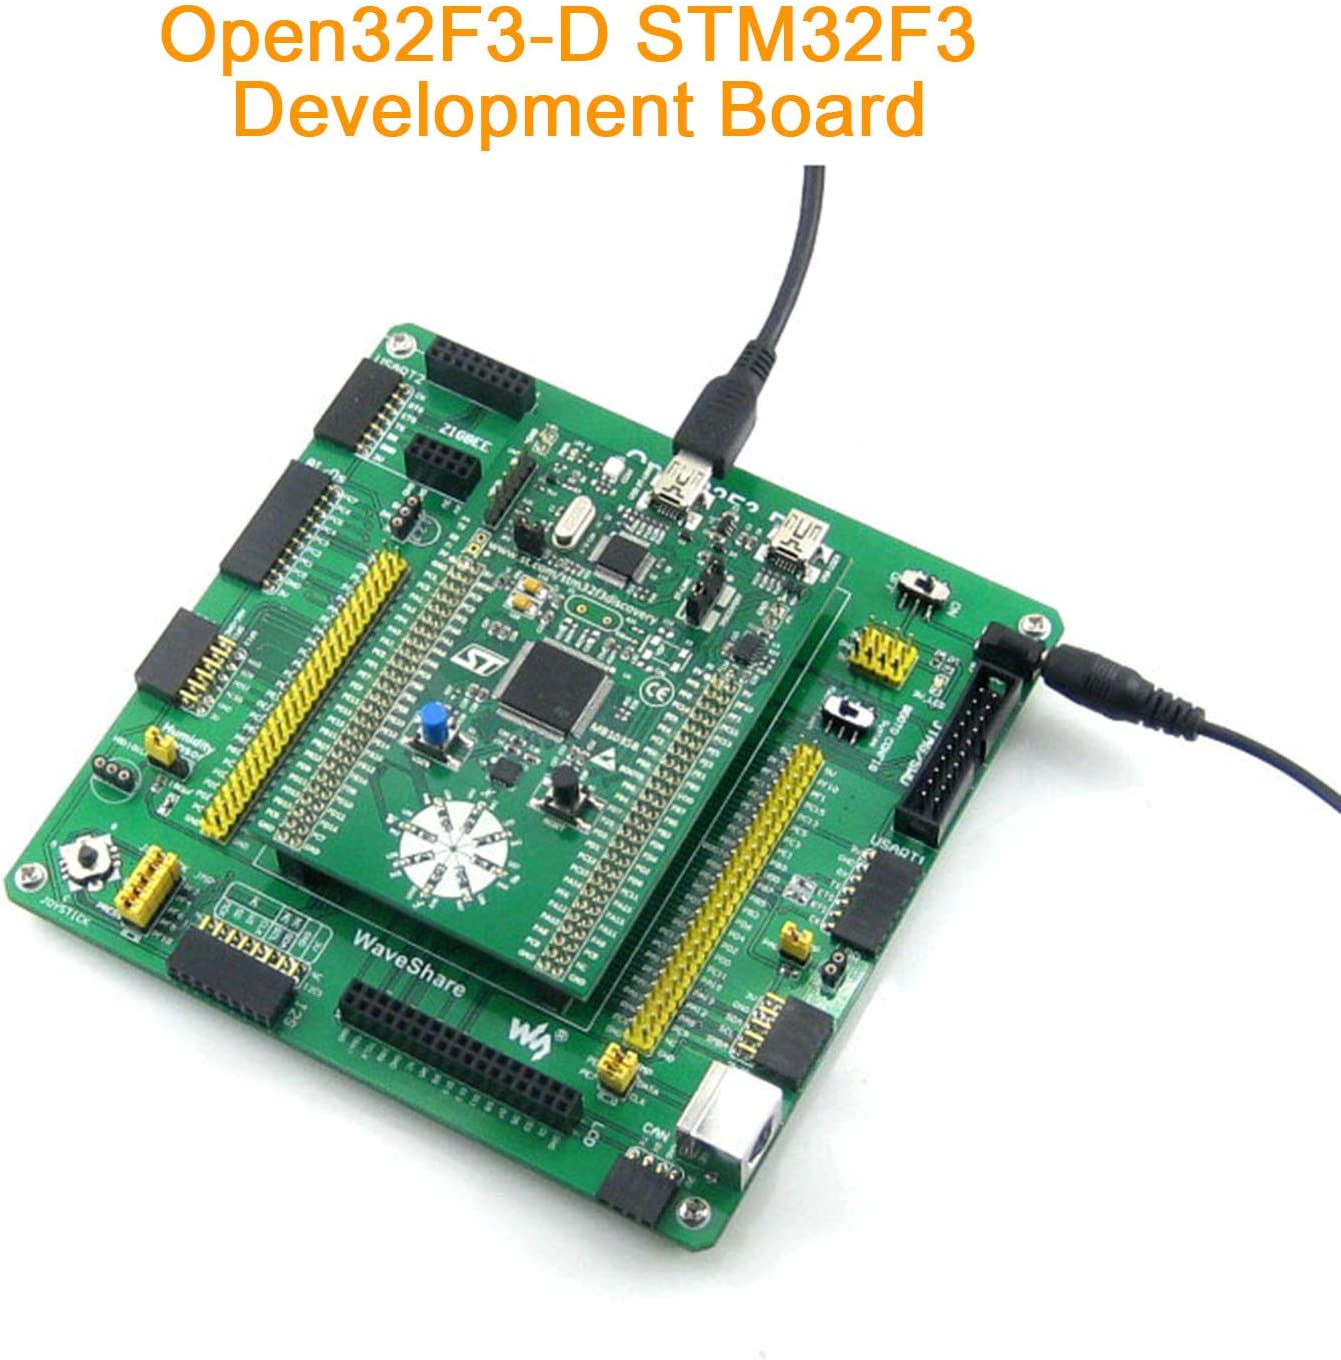 Has Various Standard Interfaces and Expansions for Application with Stm32F0 Series pzsmocn Open Source Electronic Stm32 Development Board Open32F3-D Kit Feature Stm32F3Discovery As Microcontroller